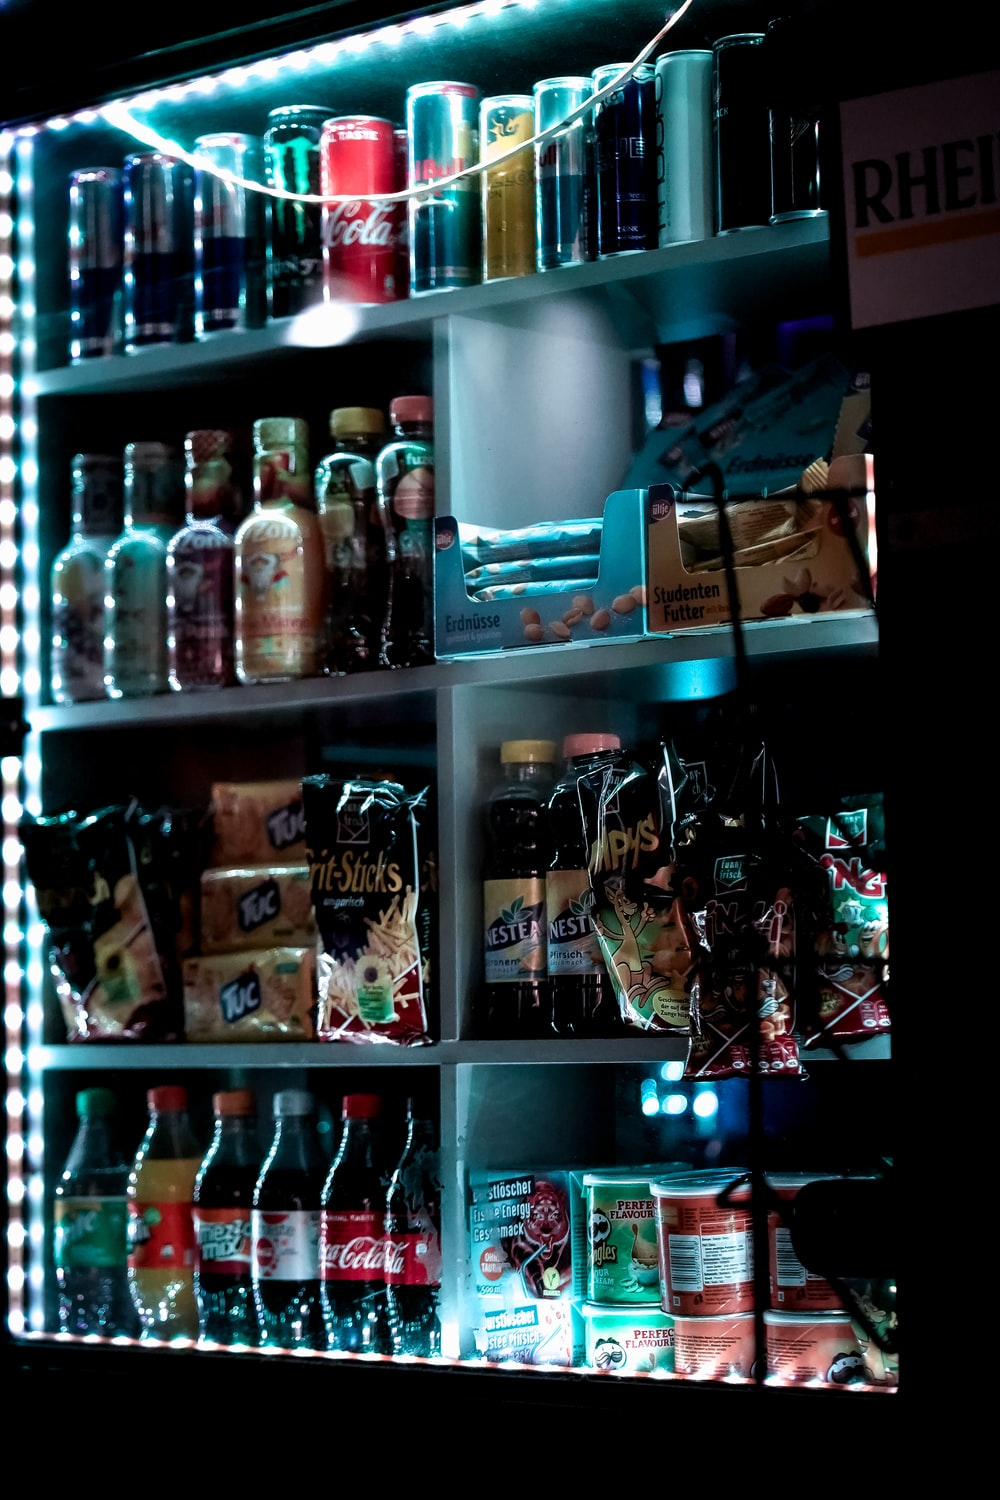 bottles on shelf with lights turned on during night time